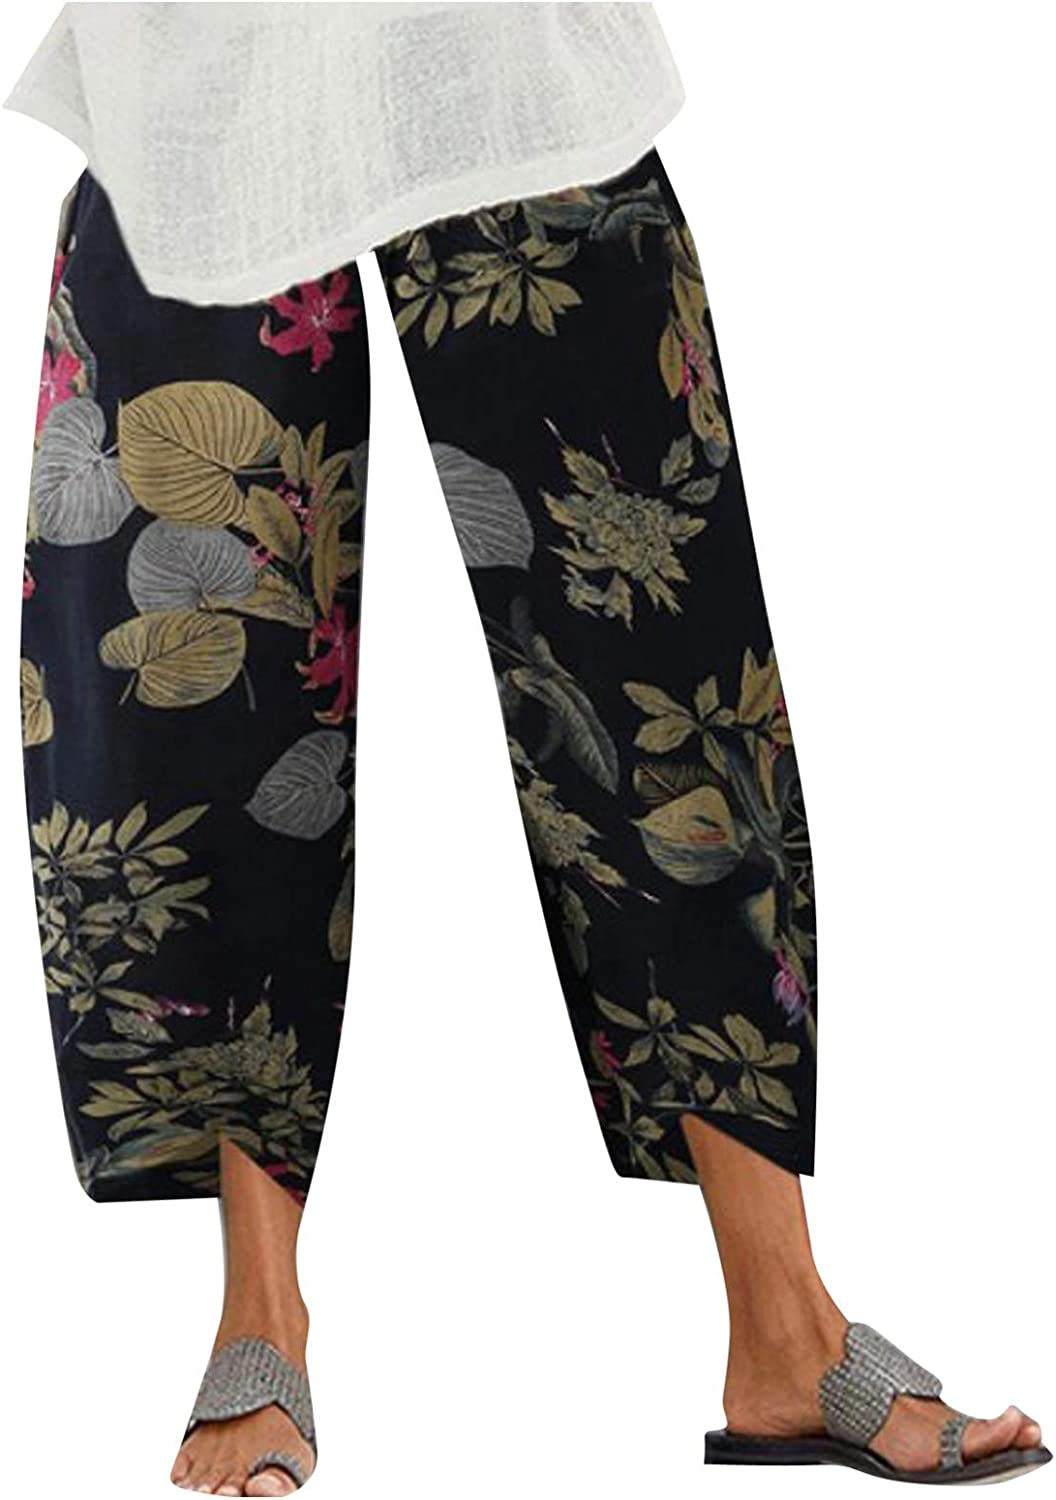 Hmazy Cotton Linen Cropped Pants for Women, Colorful Printed Linen Casual Workout Cargo Pants Active Wear with Pockets